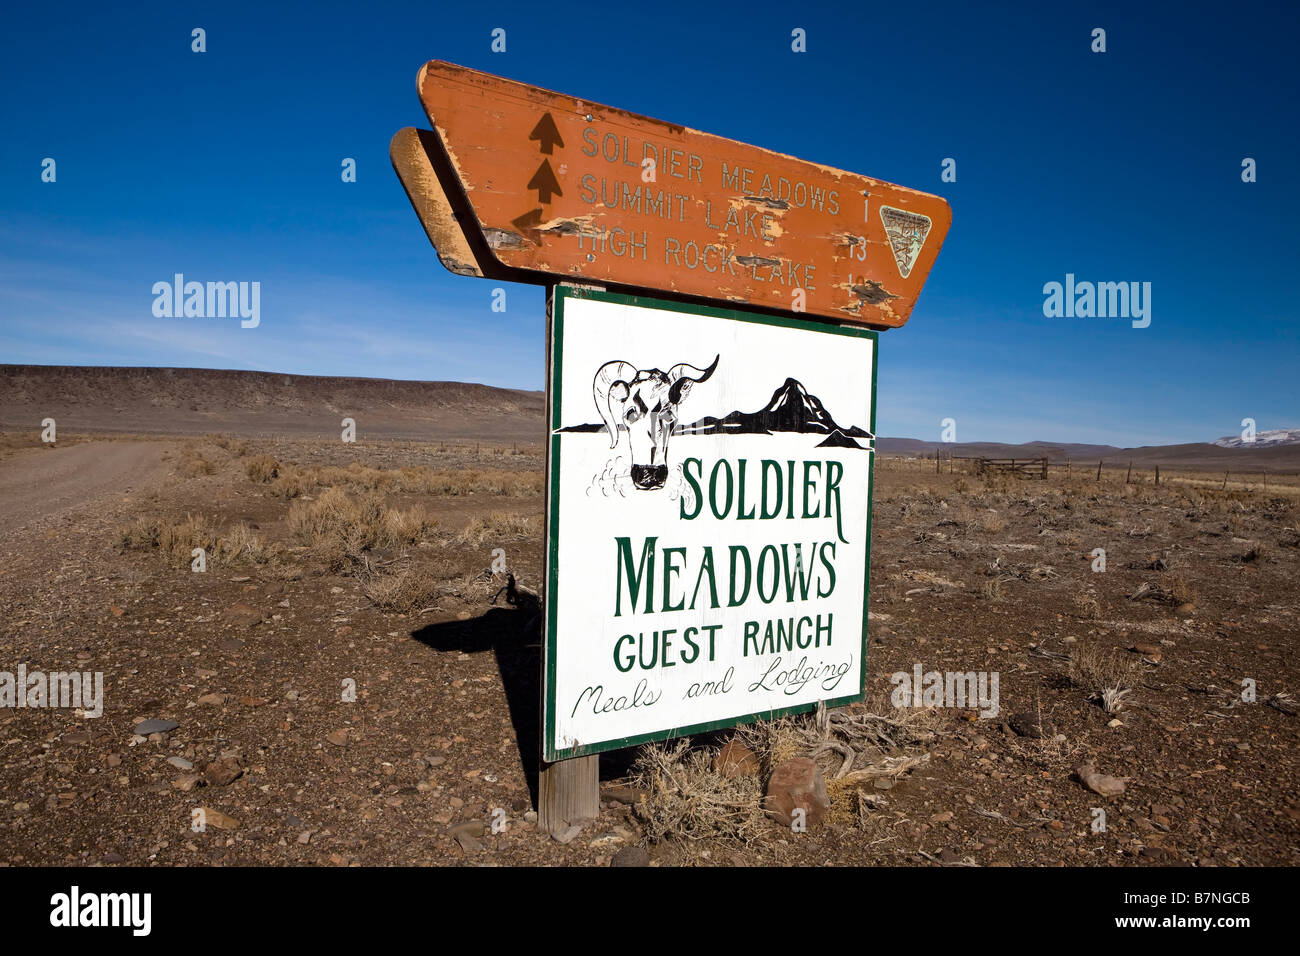 Bureau of Land Management sign indicating distances to Soldier Meadows Summit Lake and High Rock Lake on top of - Stock Image